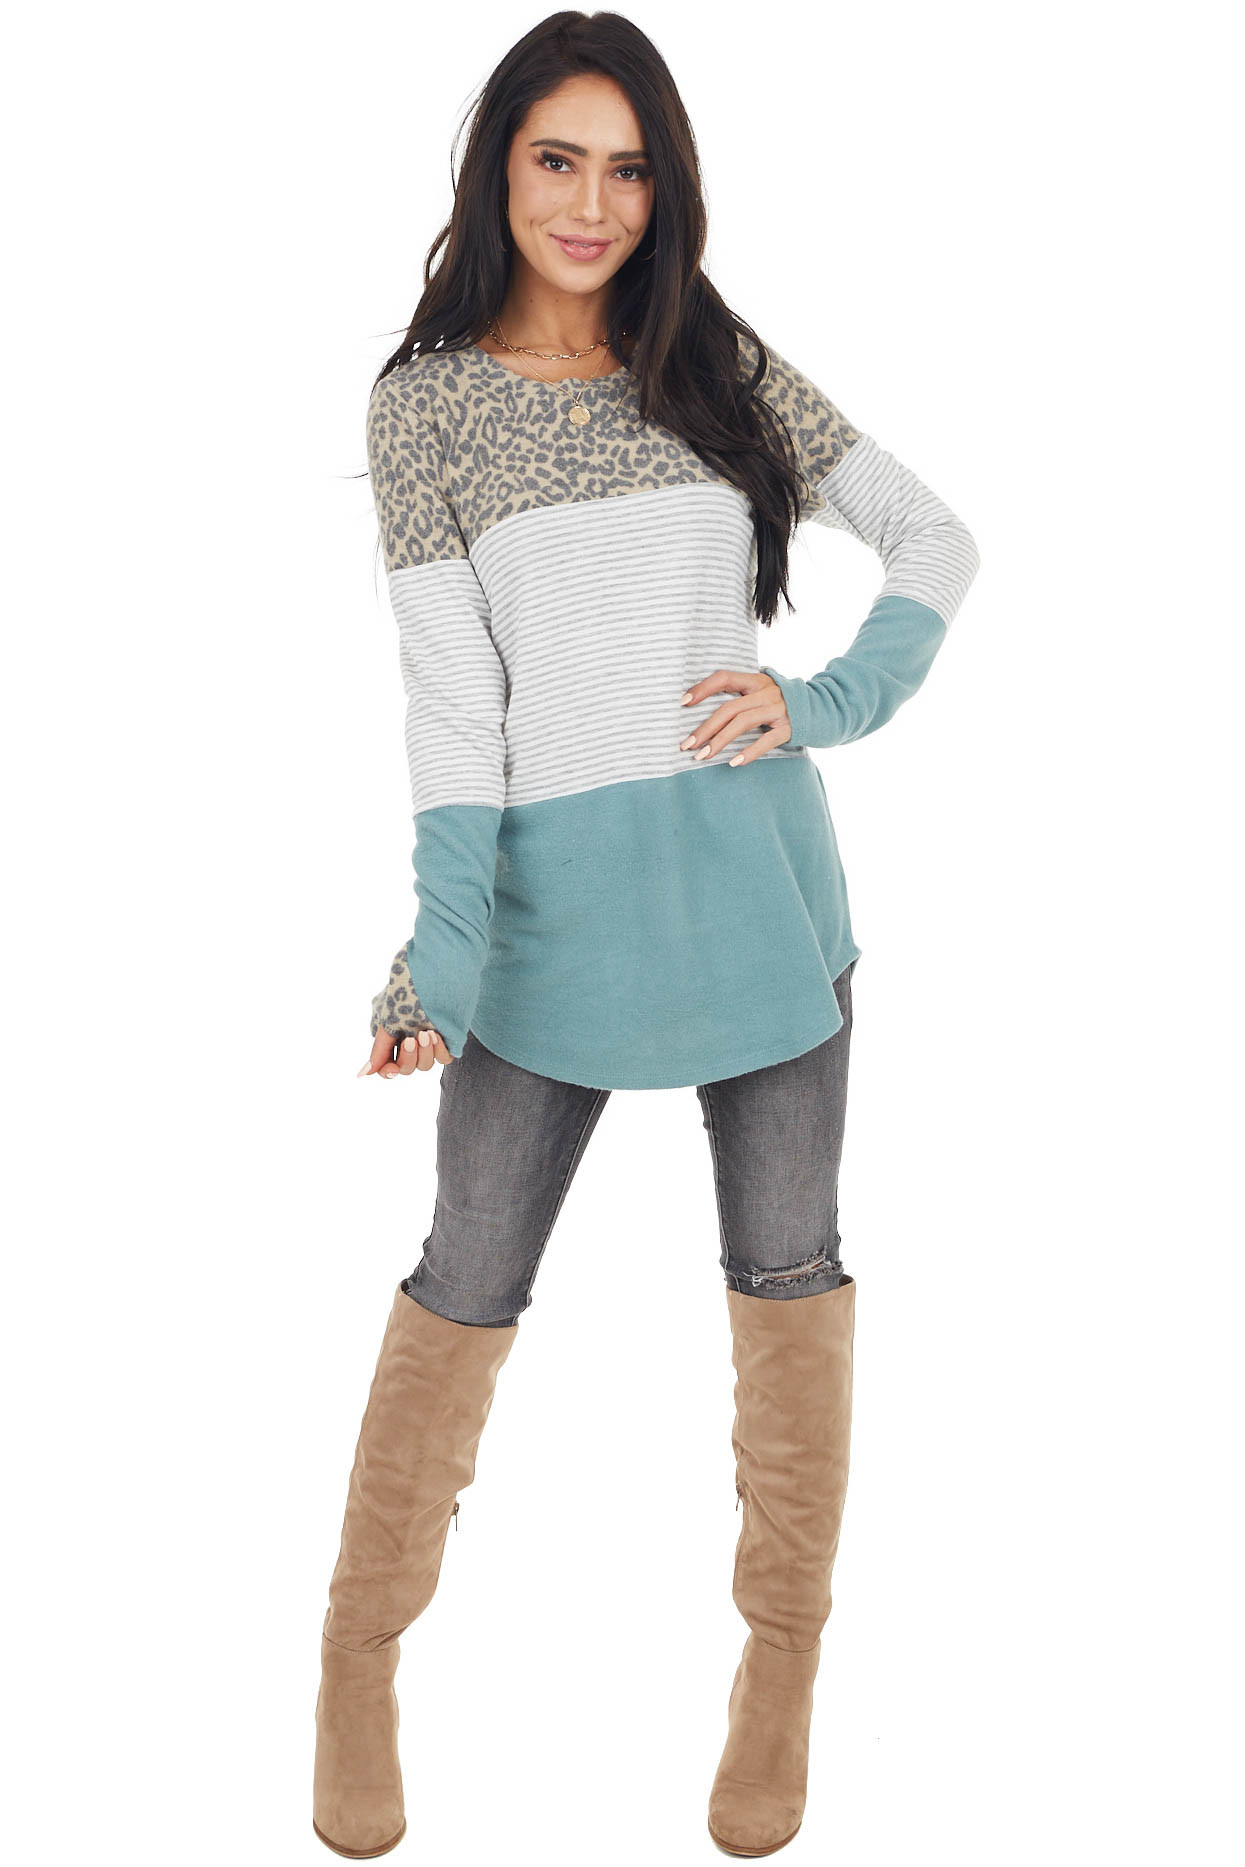 Teal and Multiprint Colorblock Stretchy Brushed Knit Top